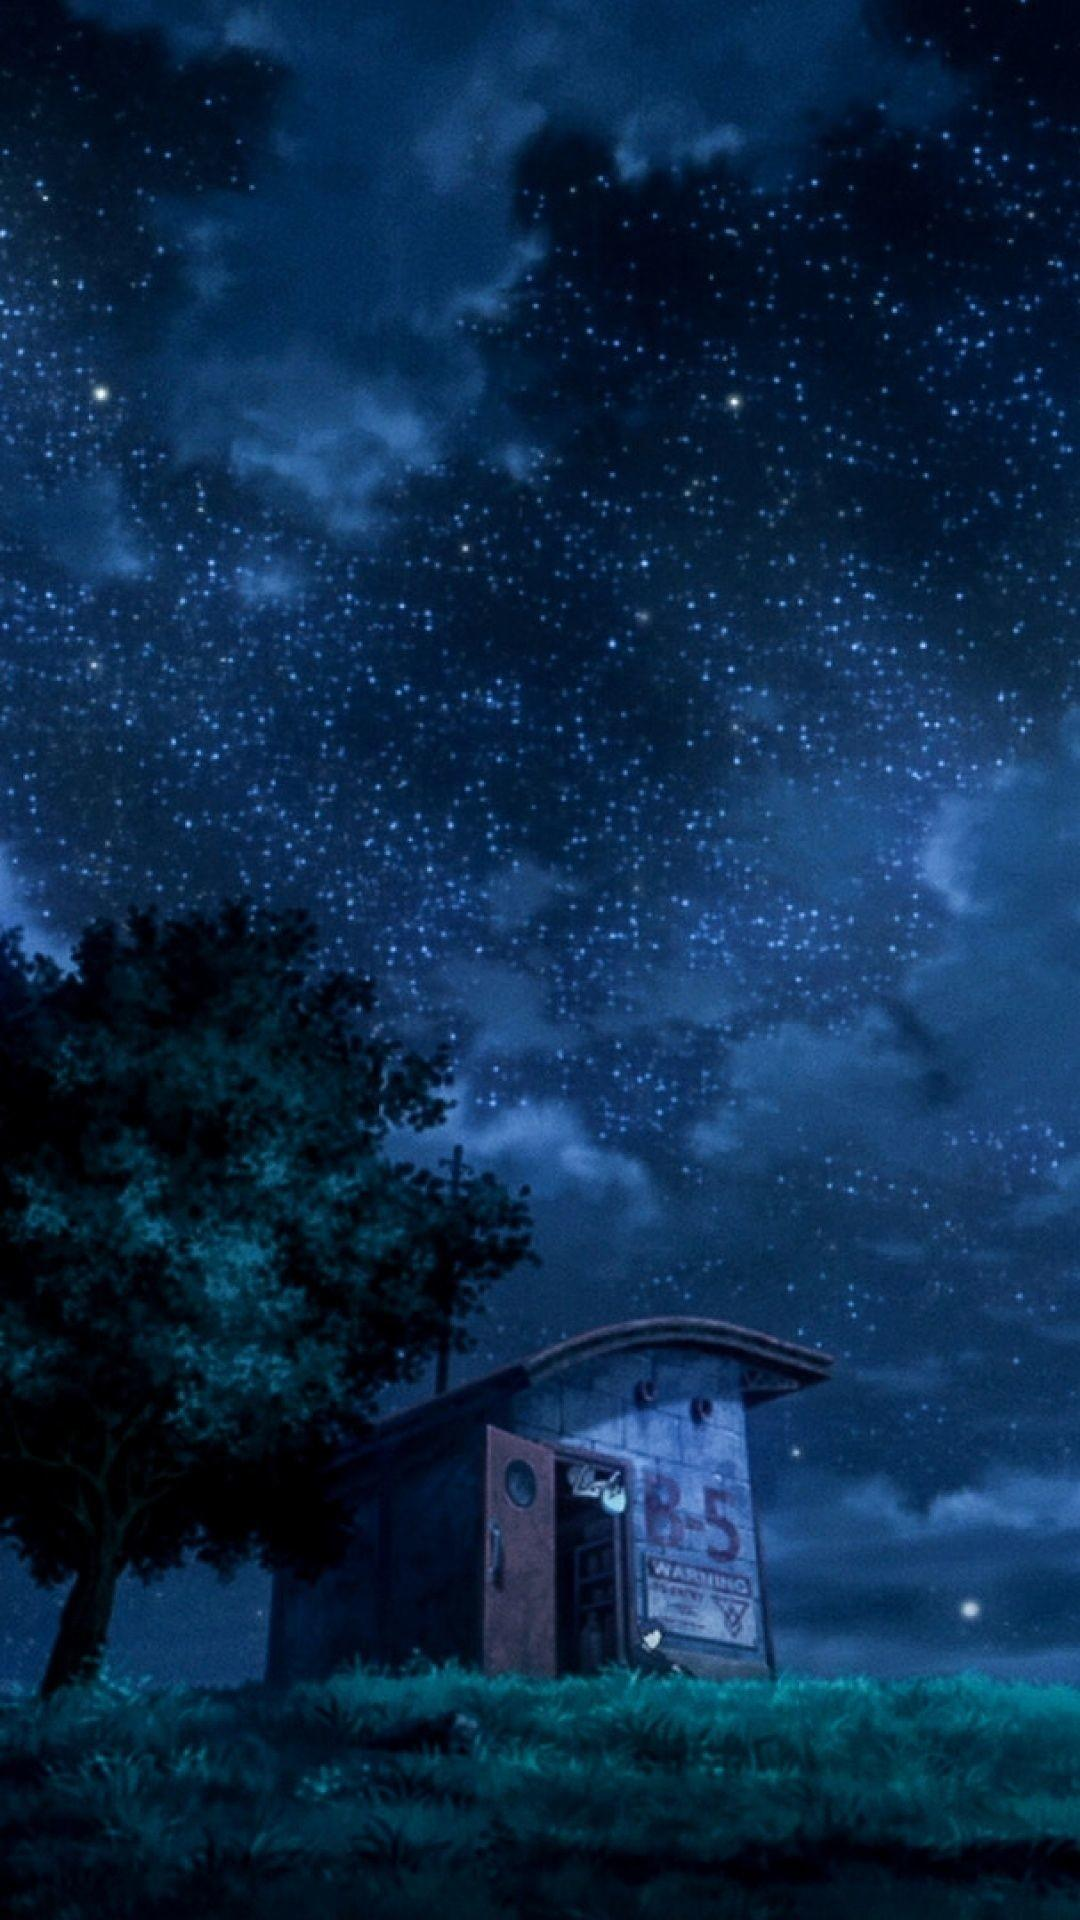 Anime Aesthetic Scenery Wallpapers - Wallpaper Cave